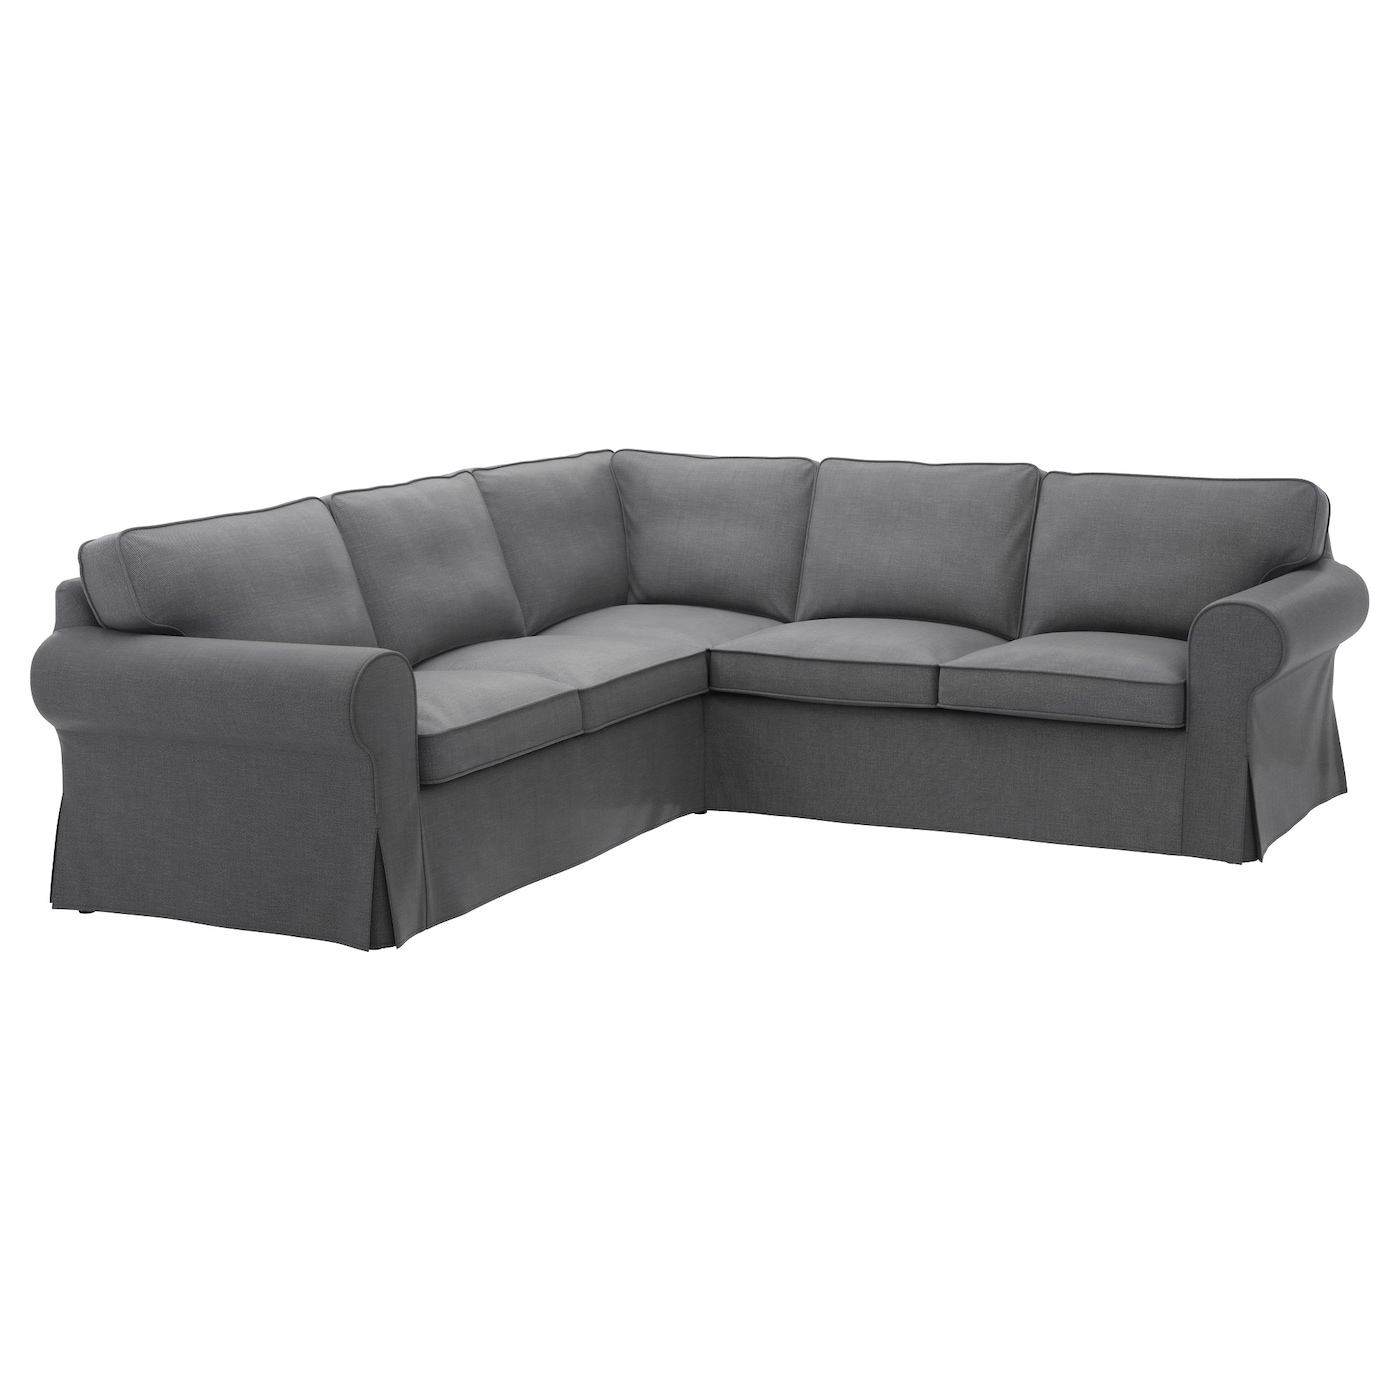 Ektorp corner sofa 4 seat nordvalla dark grey ikea for 8 foot couch